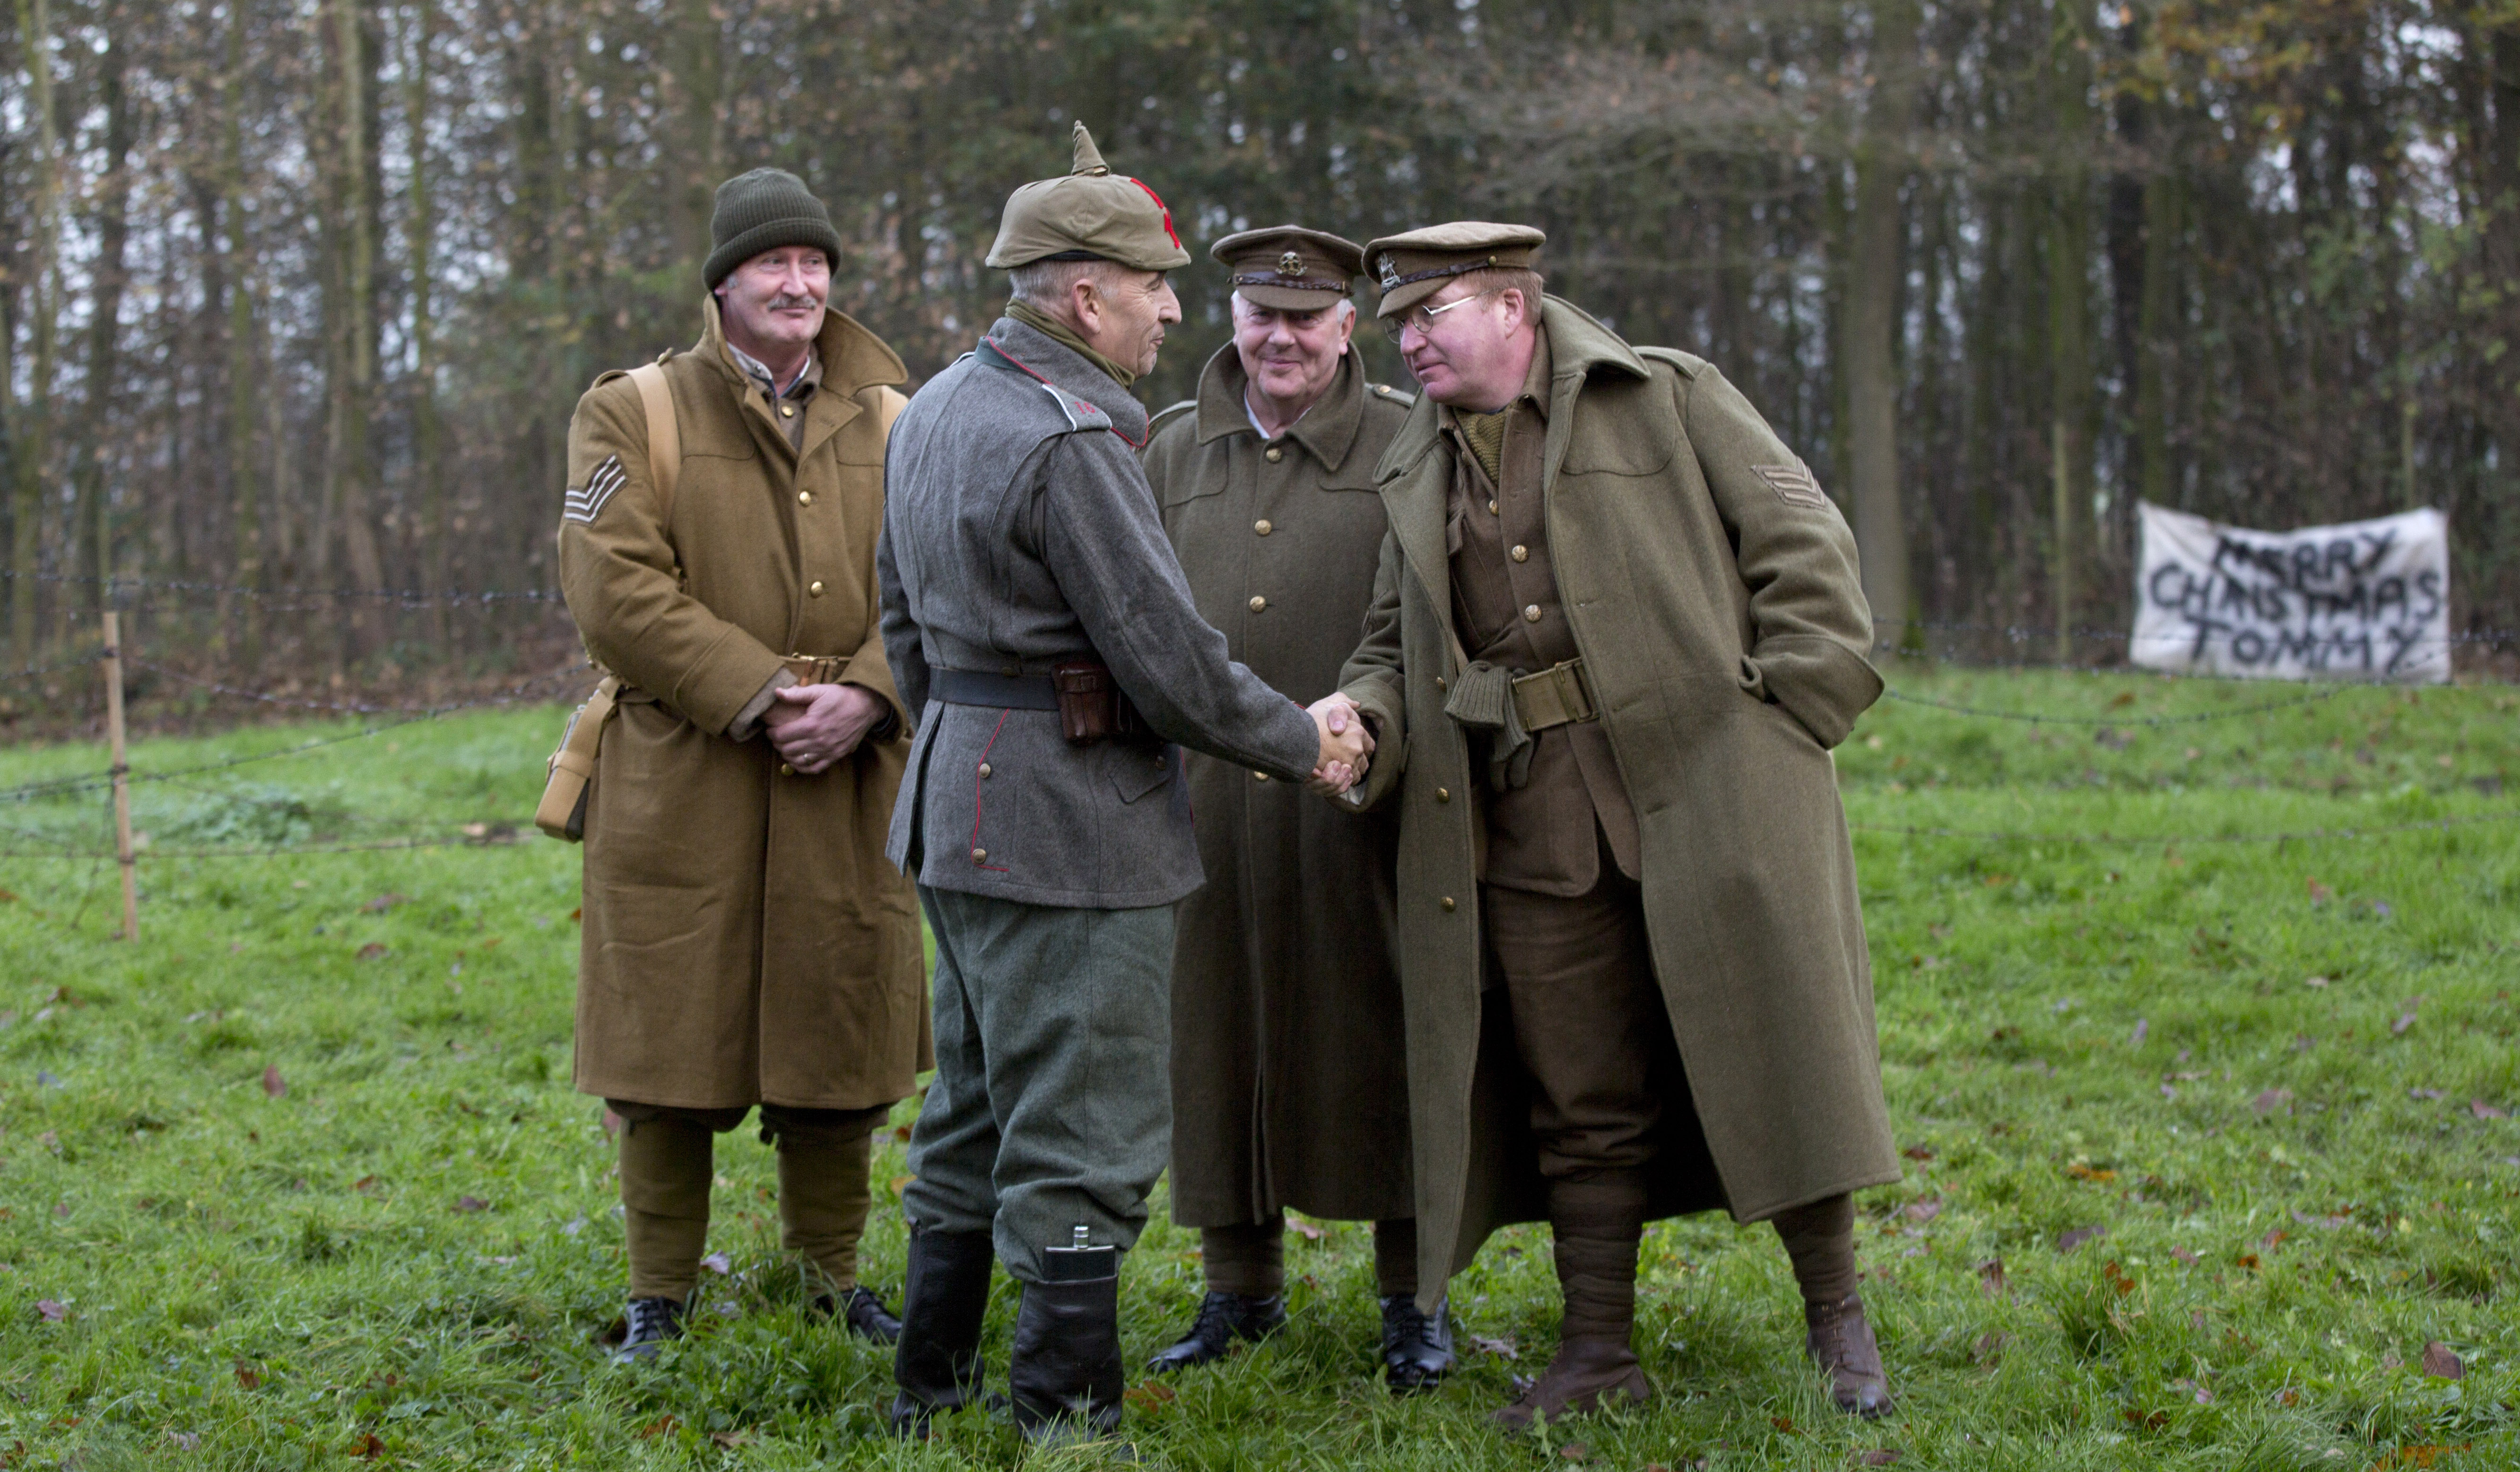 Soldier's WWI letter recalls Christmas Day truce marked with cigars, jam